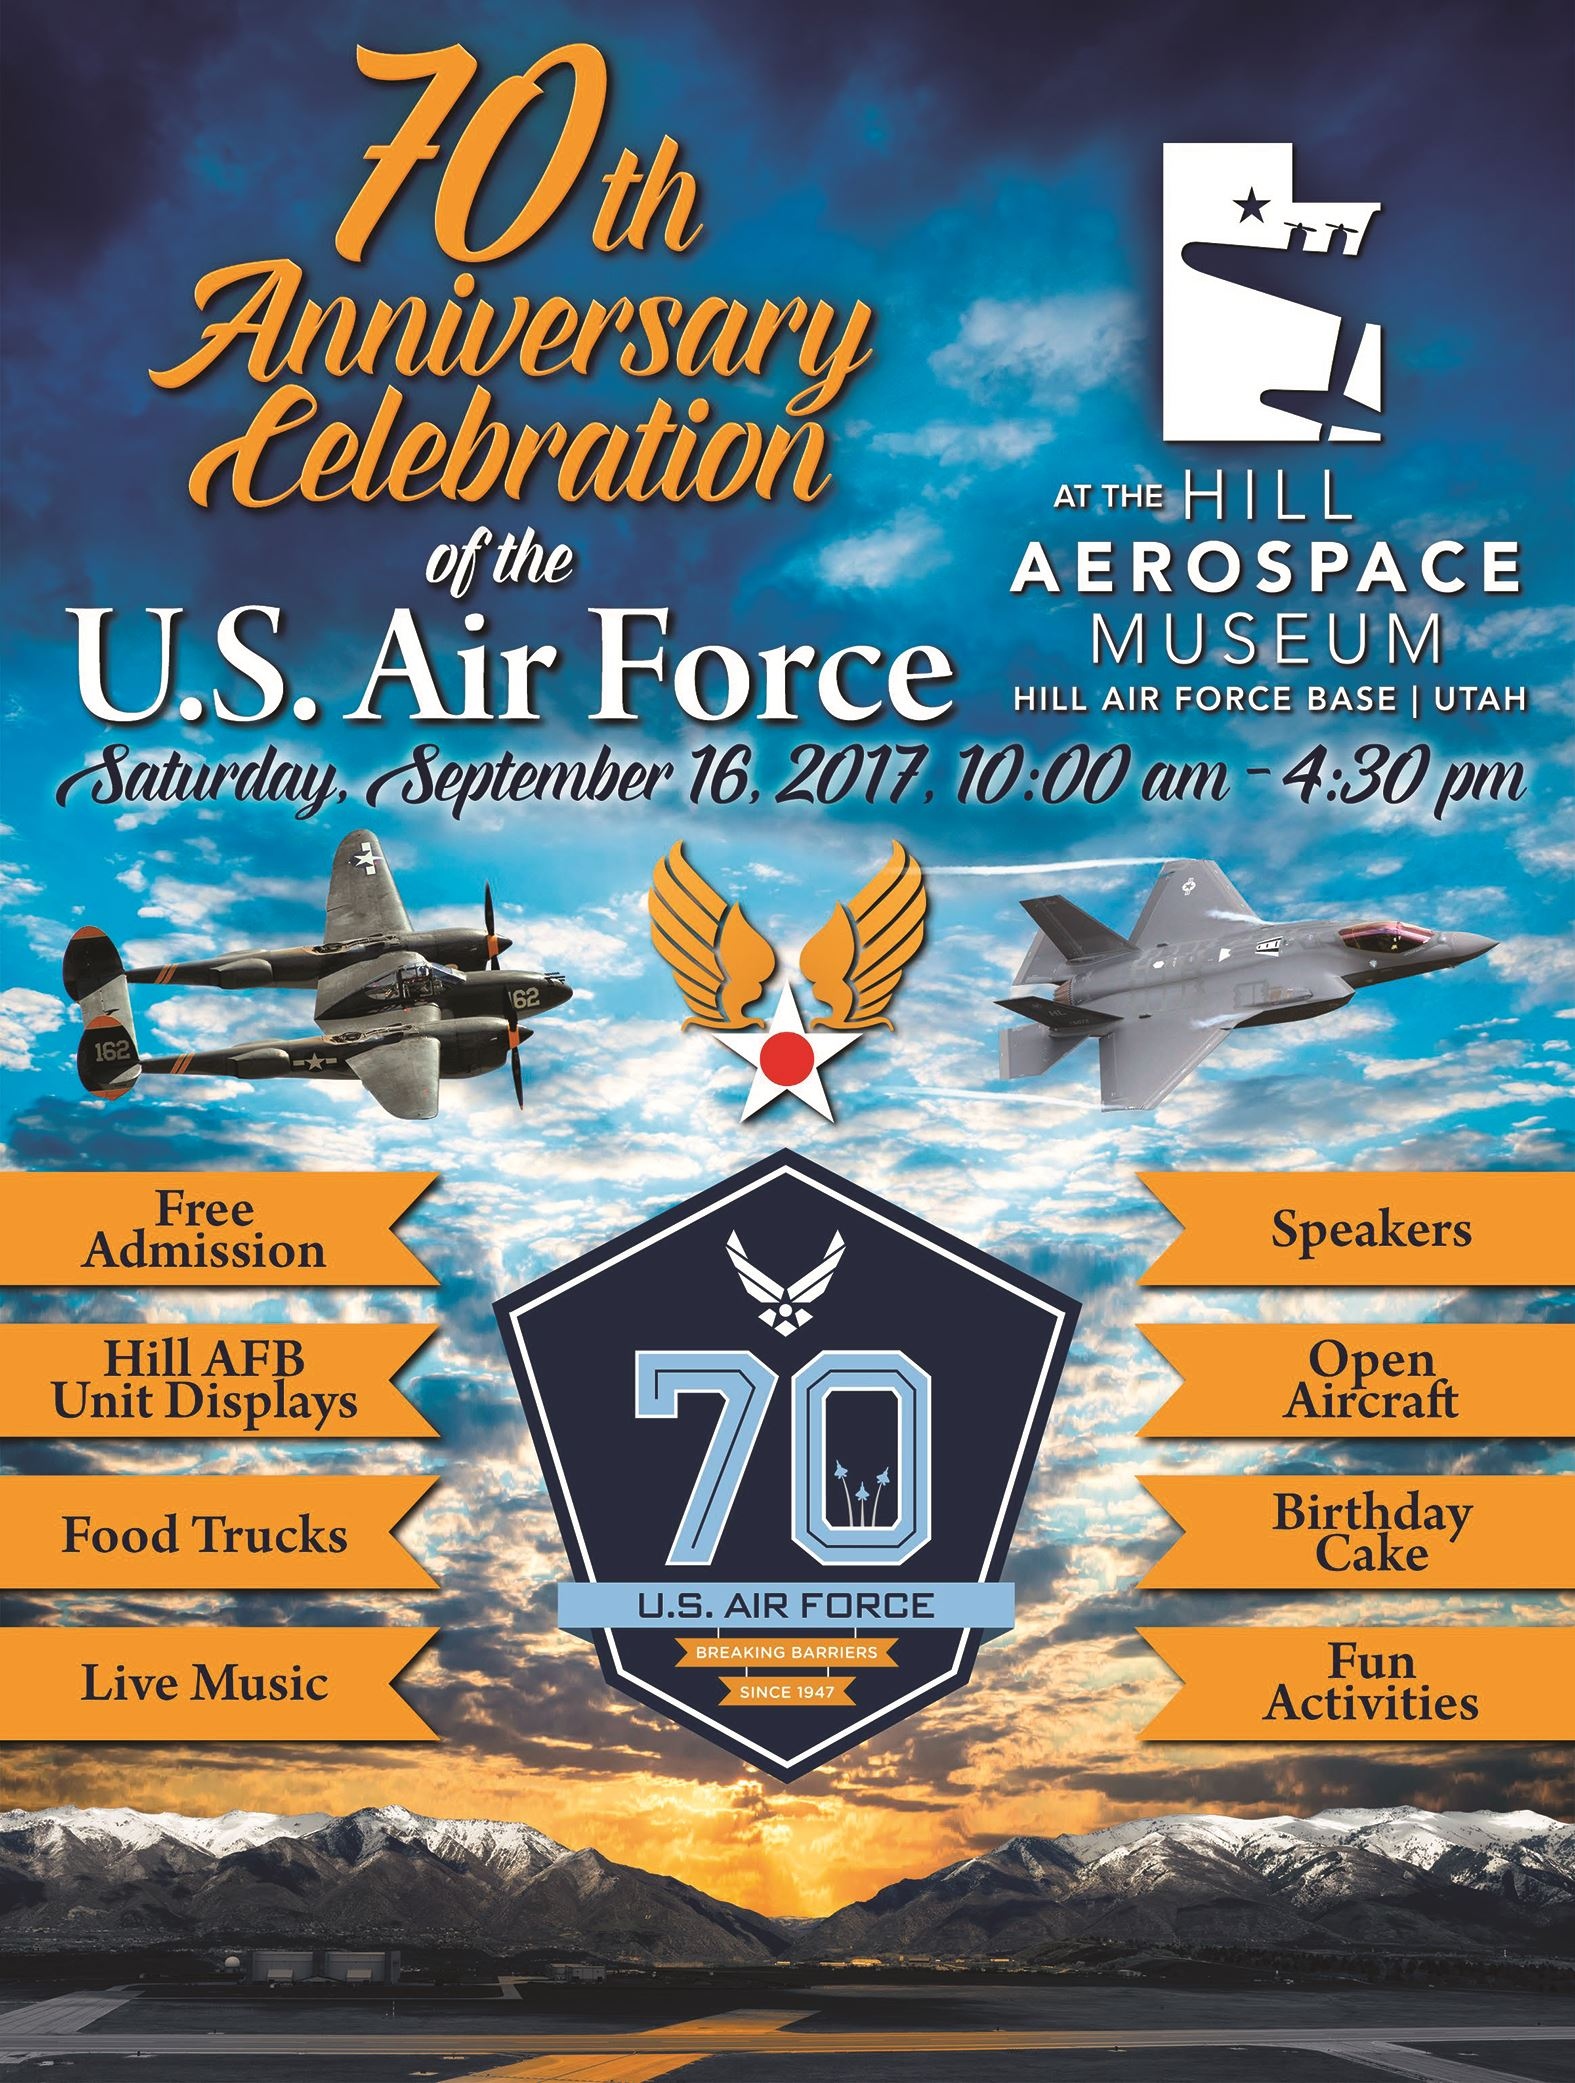 Hill Aerospace Museum to Host USAF 70th Anniversary Celebration